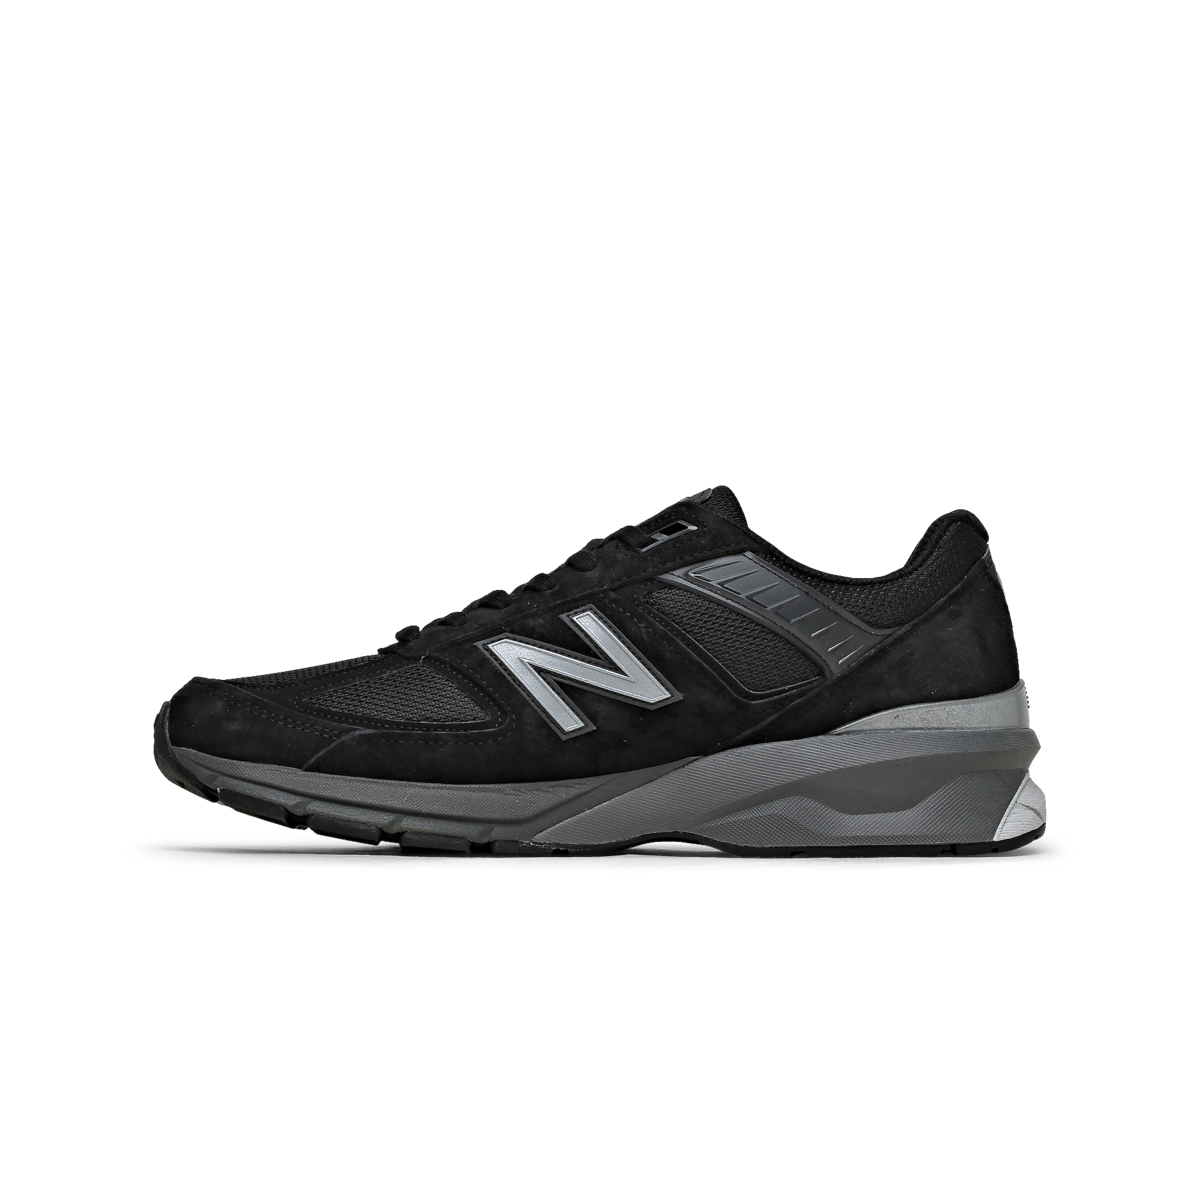 39574389491dc Buy New Balance 990 - Black | M990BK5